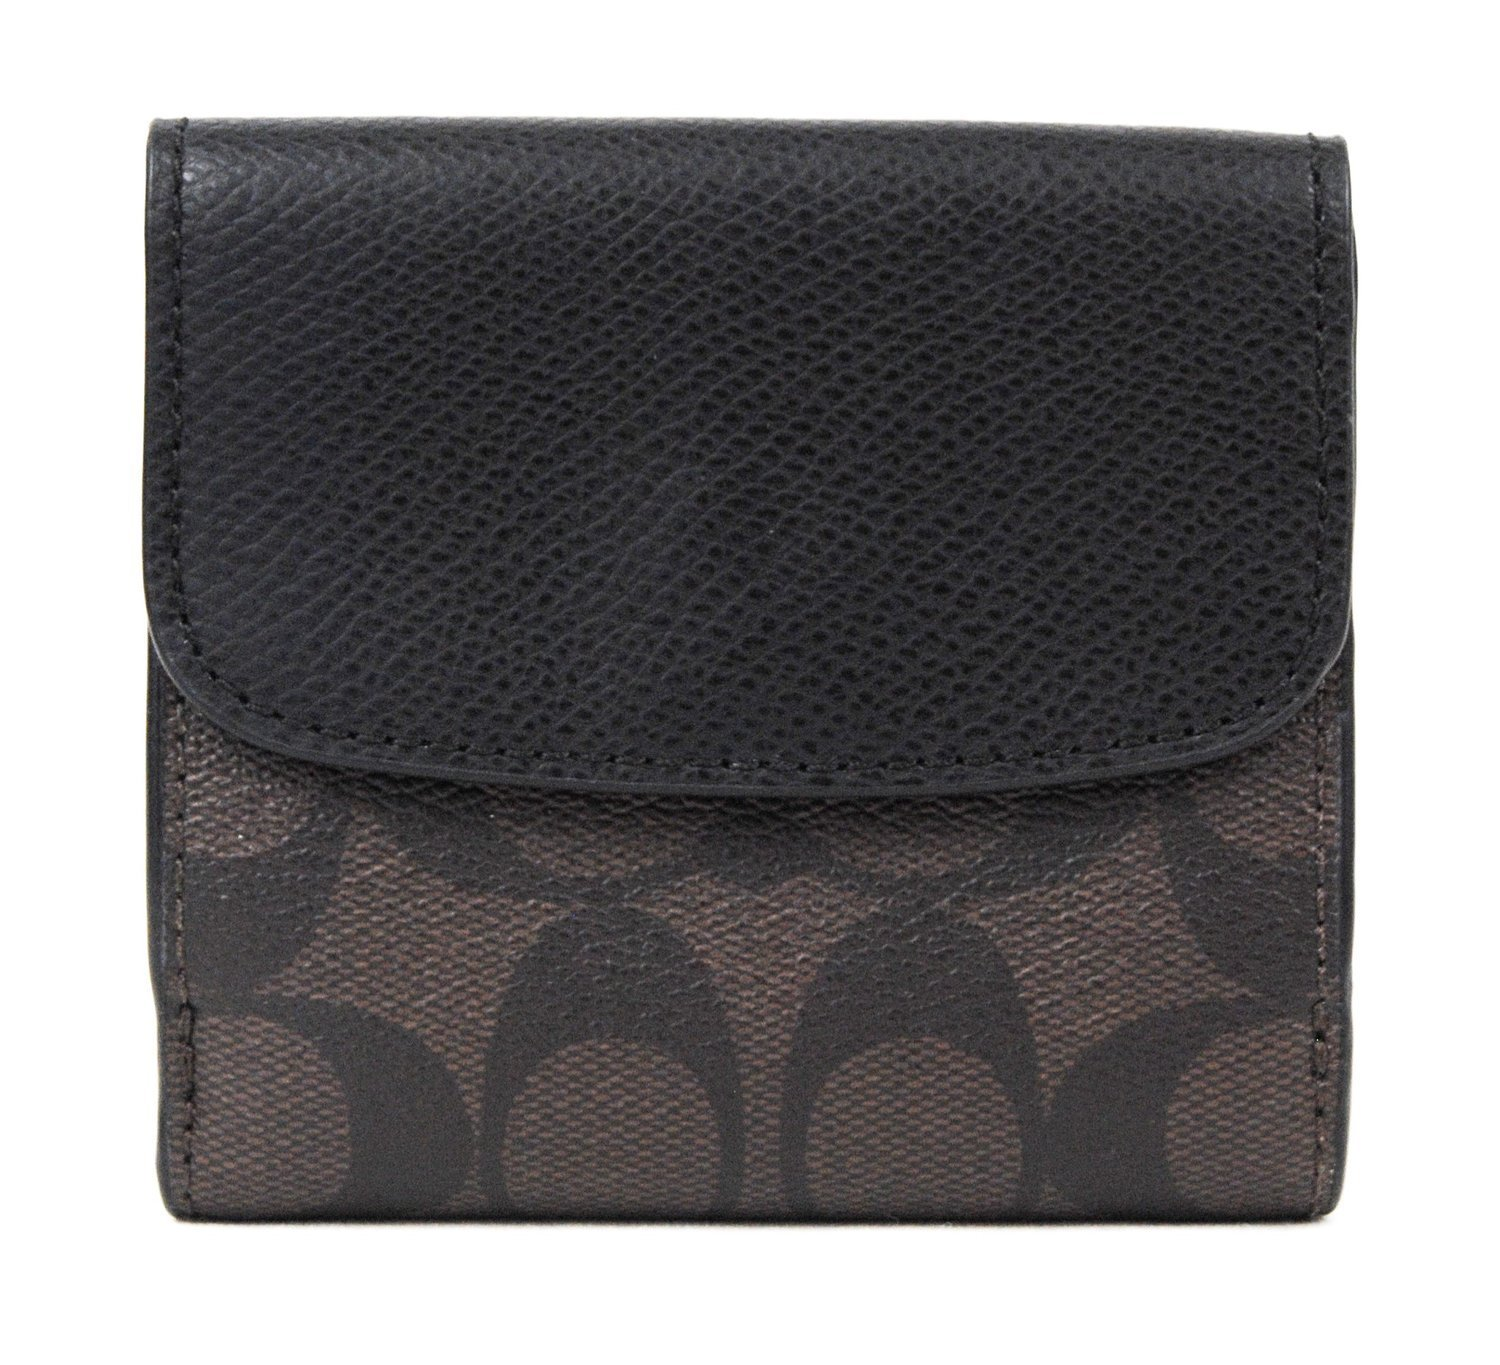 official photos 4df60 44159 Wallets Clothing, Shoes & Accessories New Authentic Coach ...